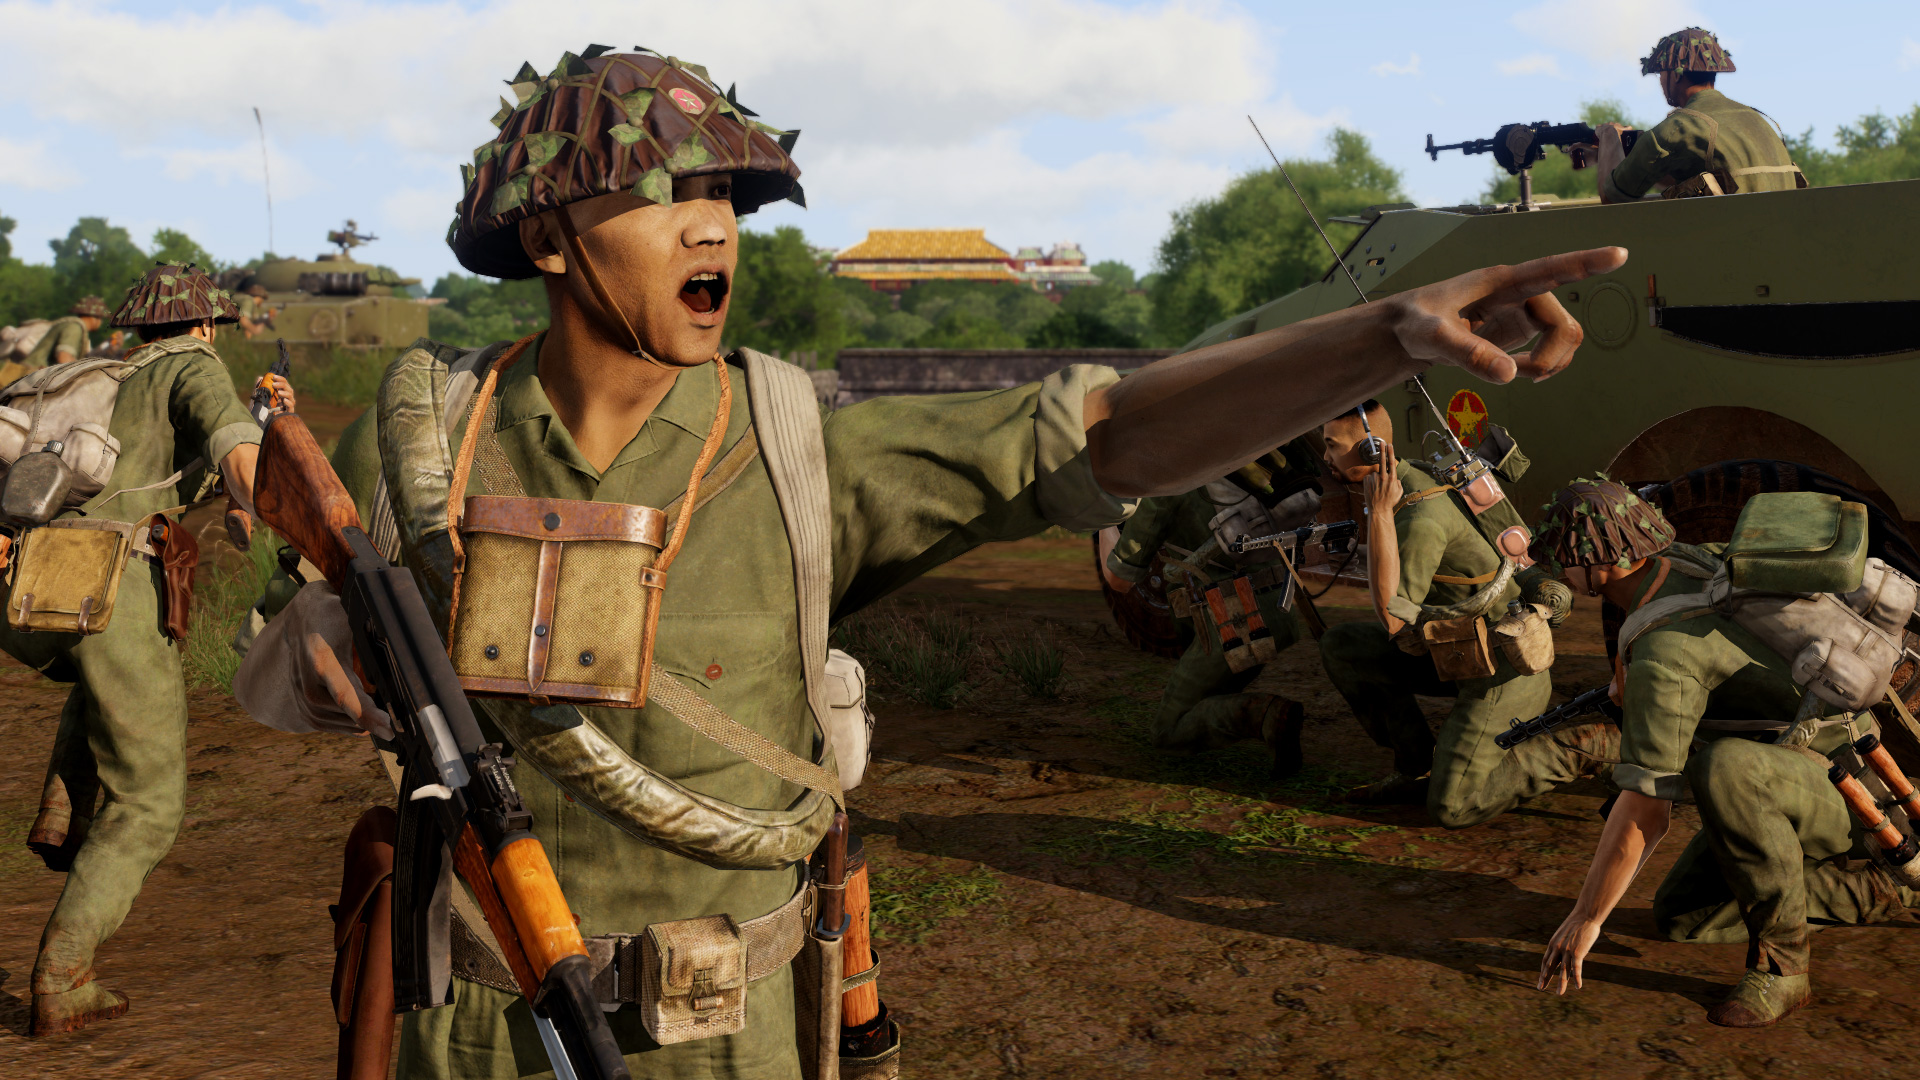 Arma 3 is going to Vietnam